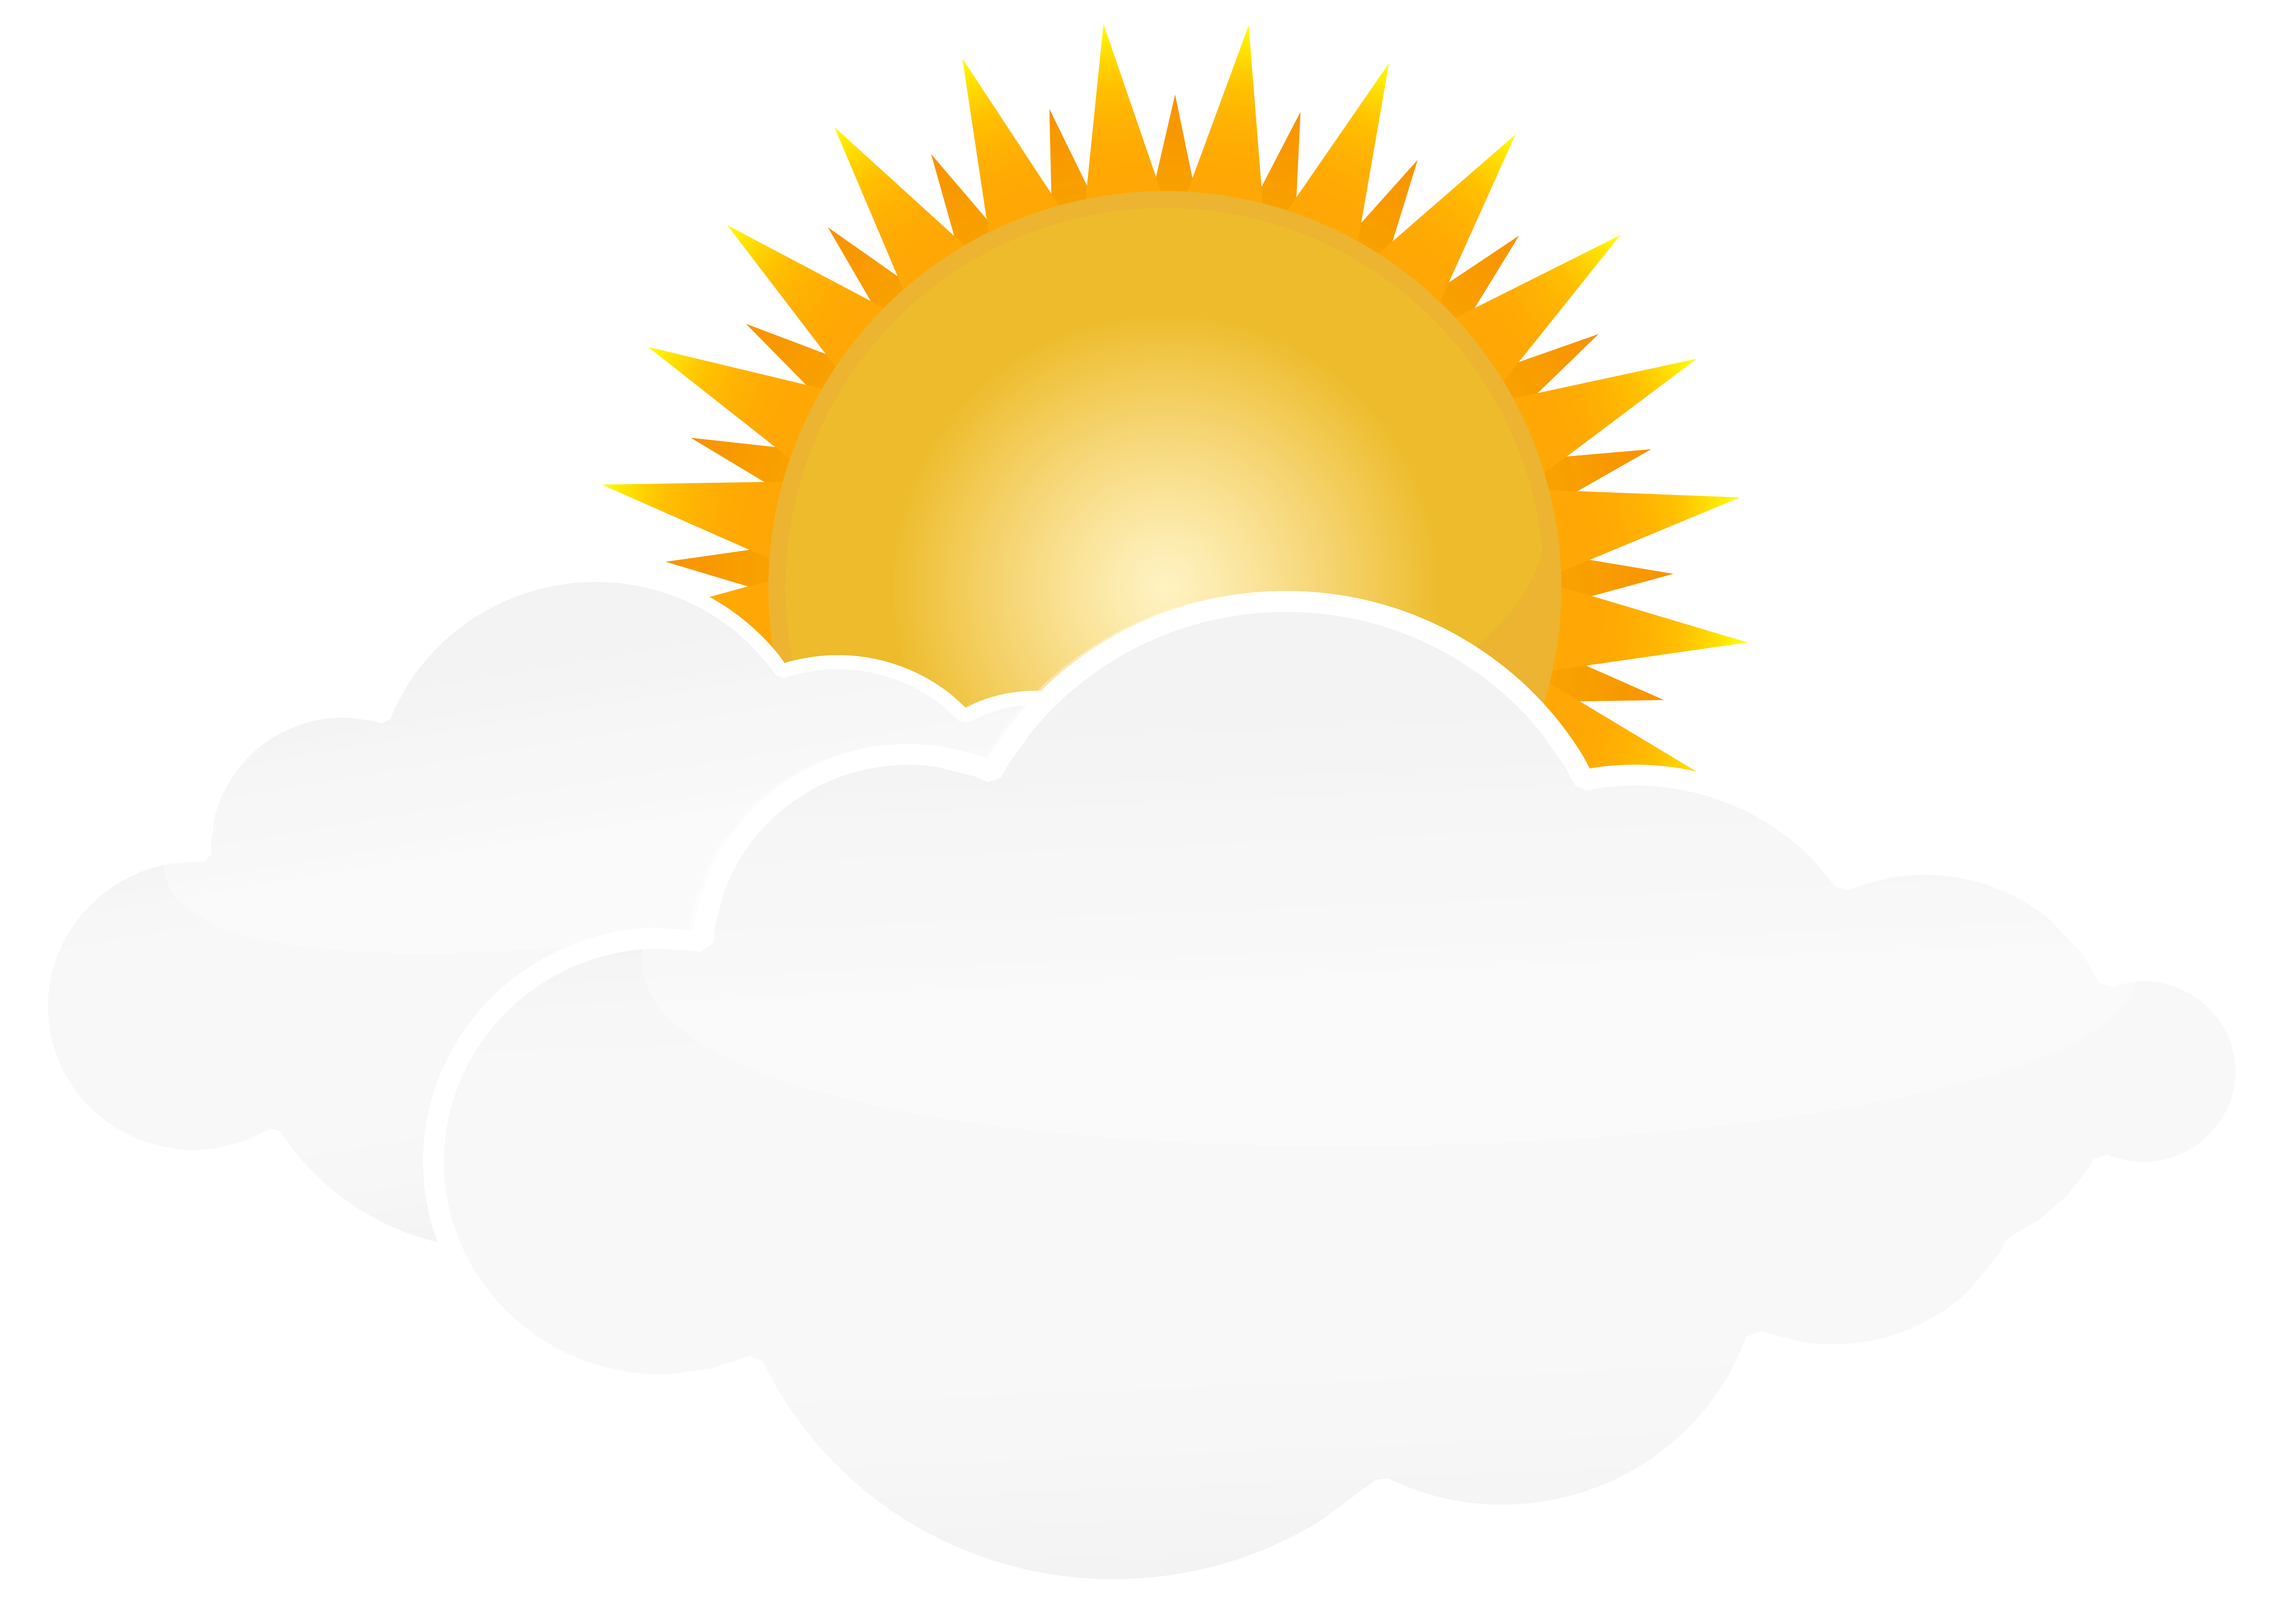 Sun And Clouds Clipart Png.